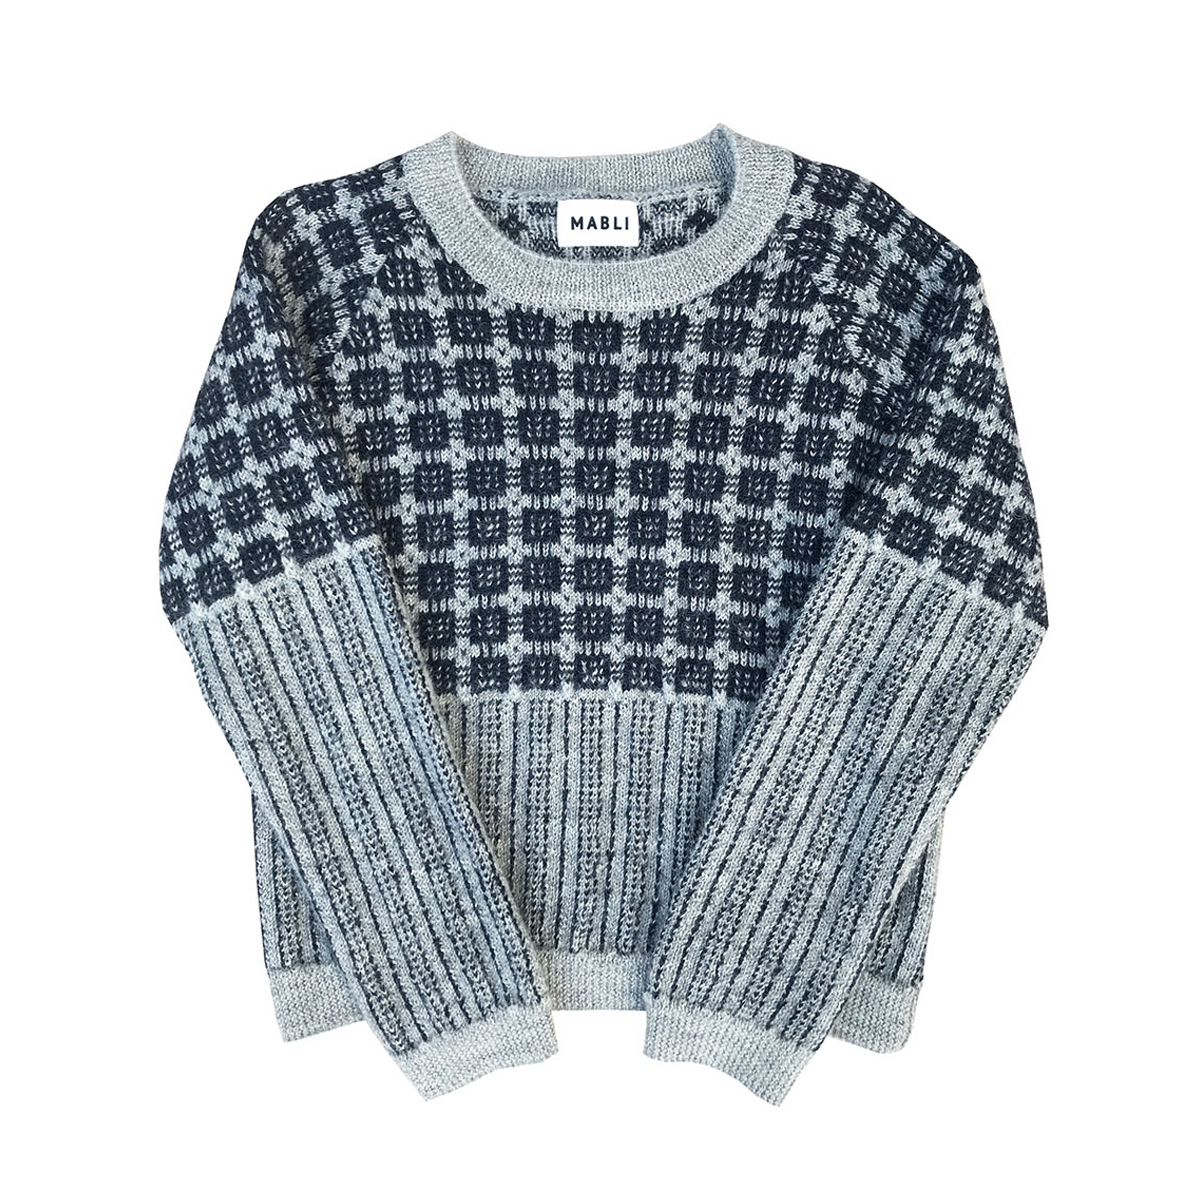 Mabli Knits Teifi Sweater